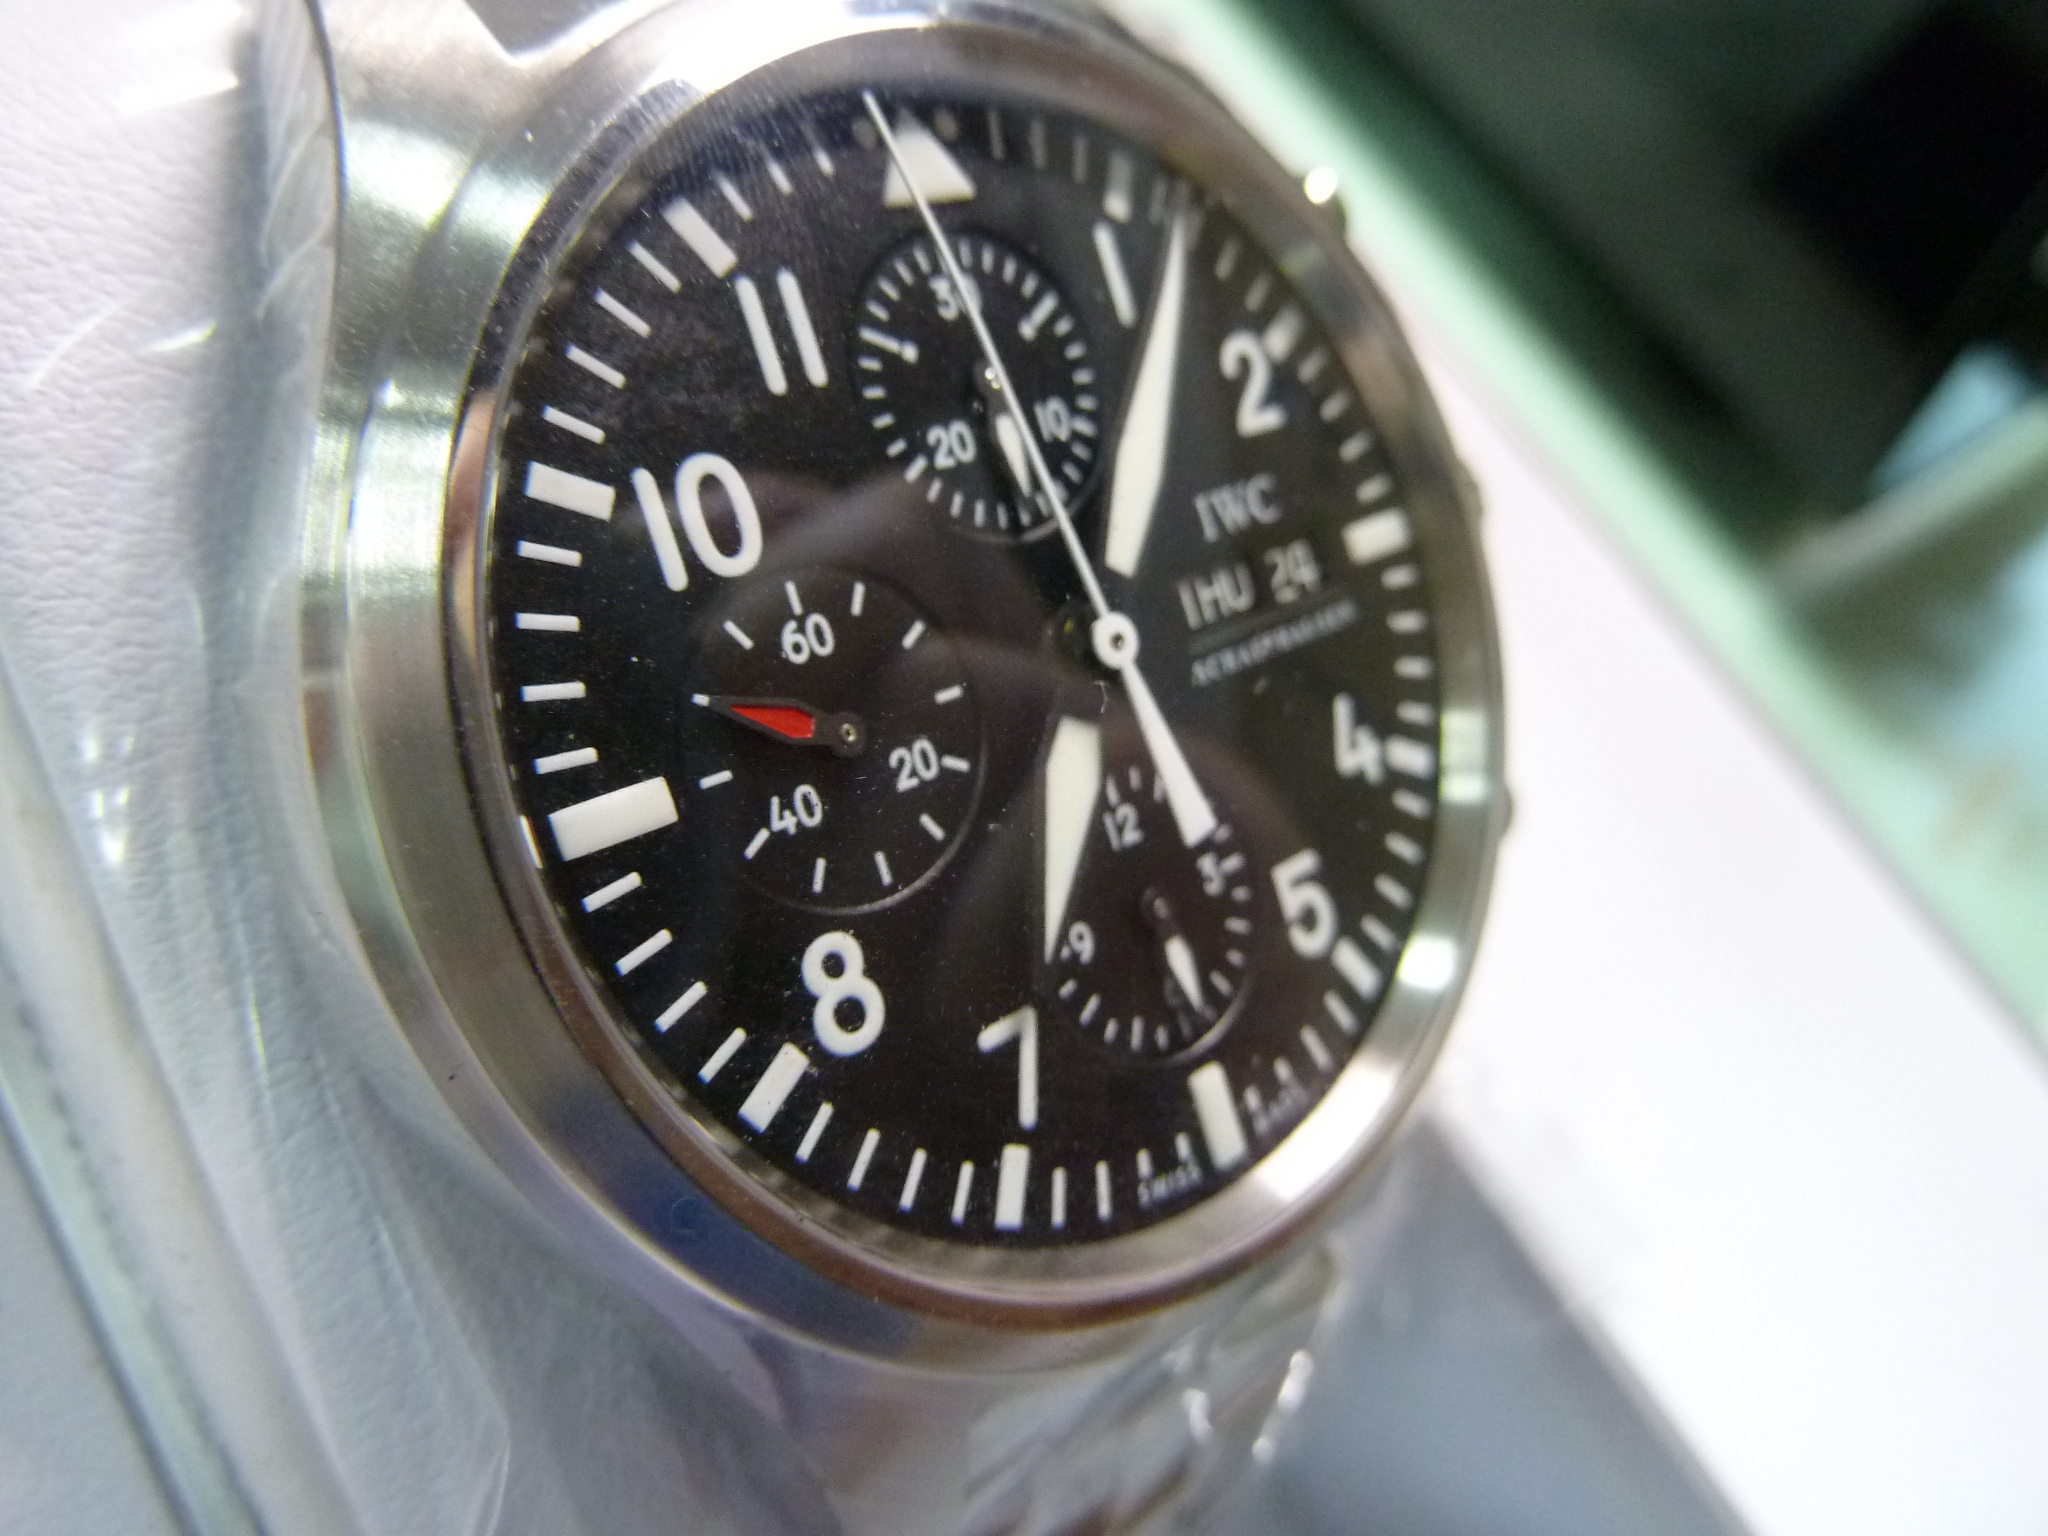 IWC Unused Gent's S/Steel spitfire pilot day-date chronograph watch